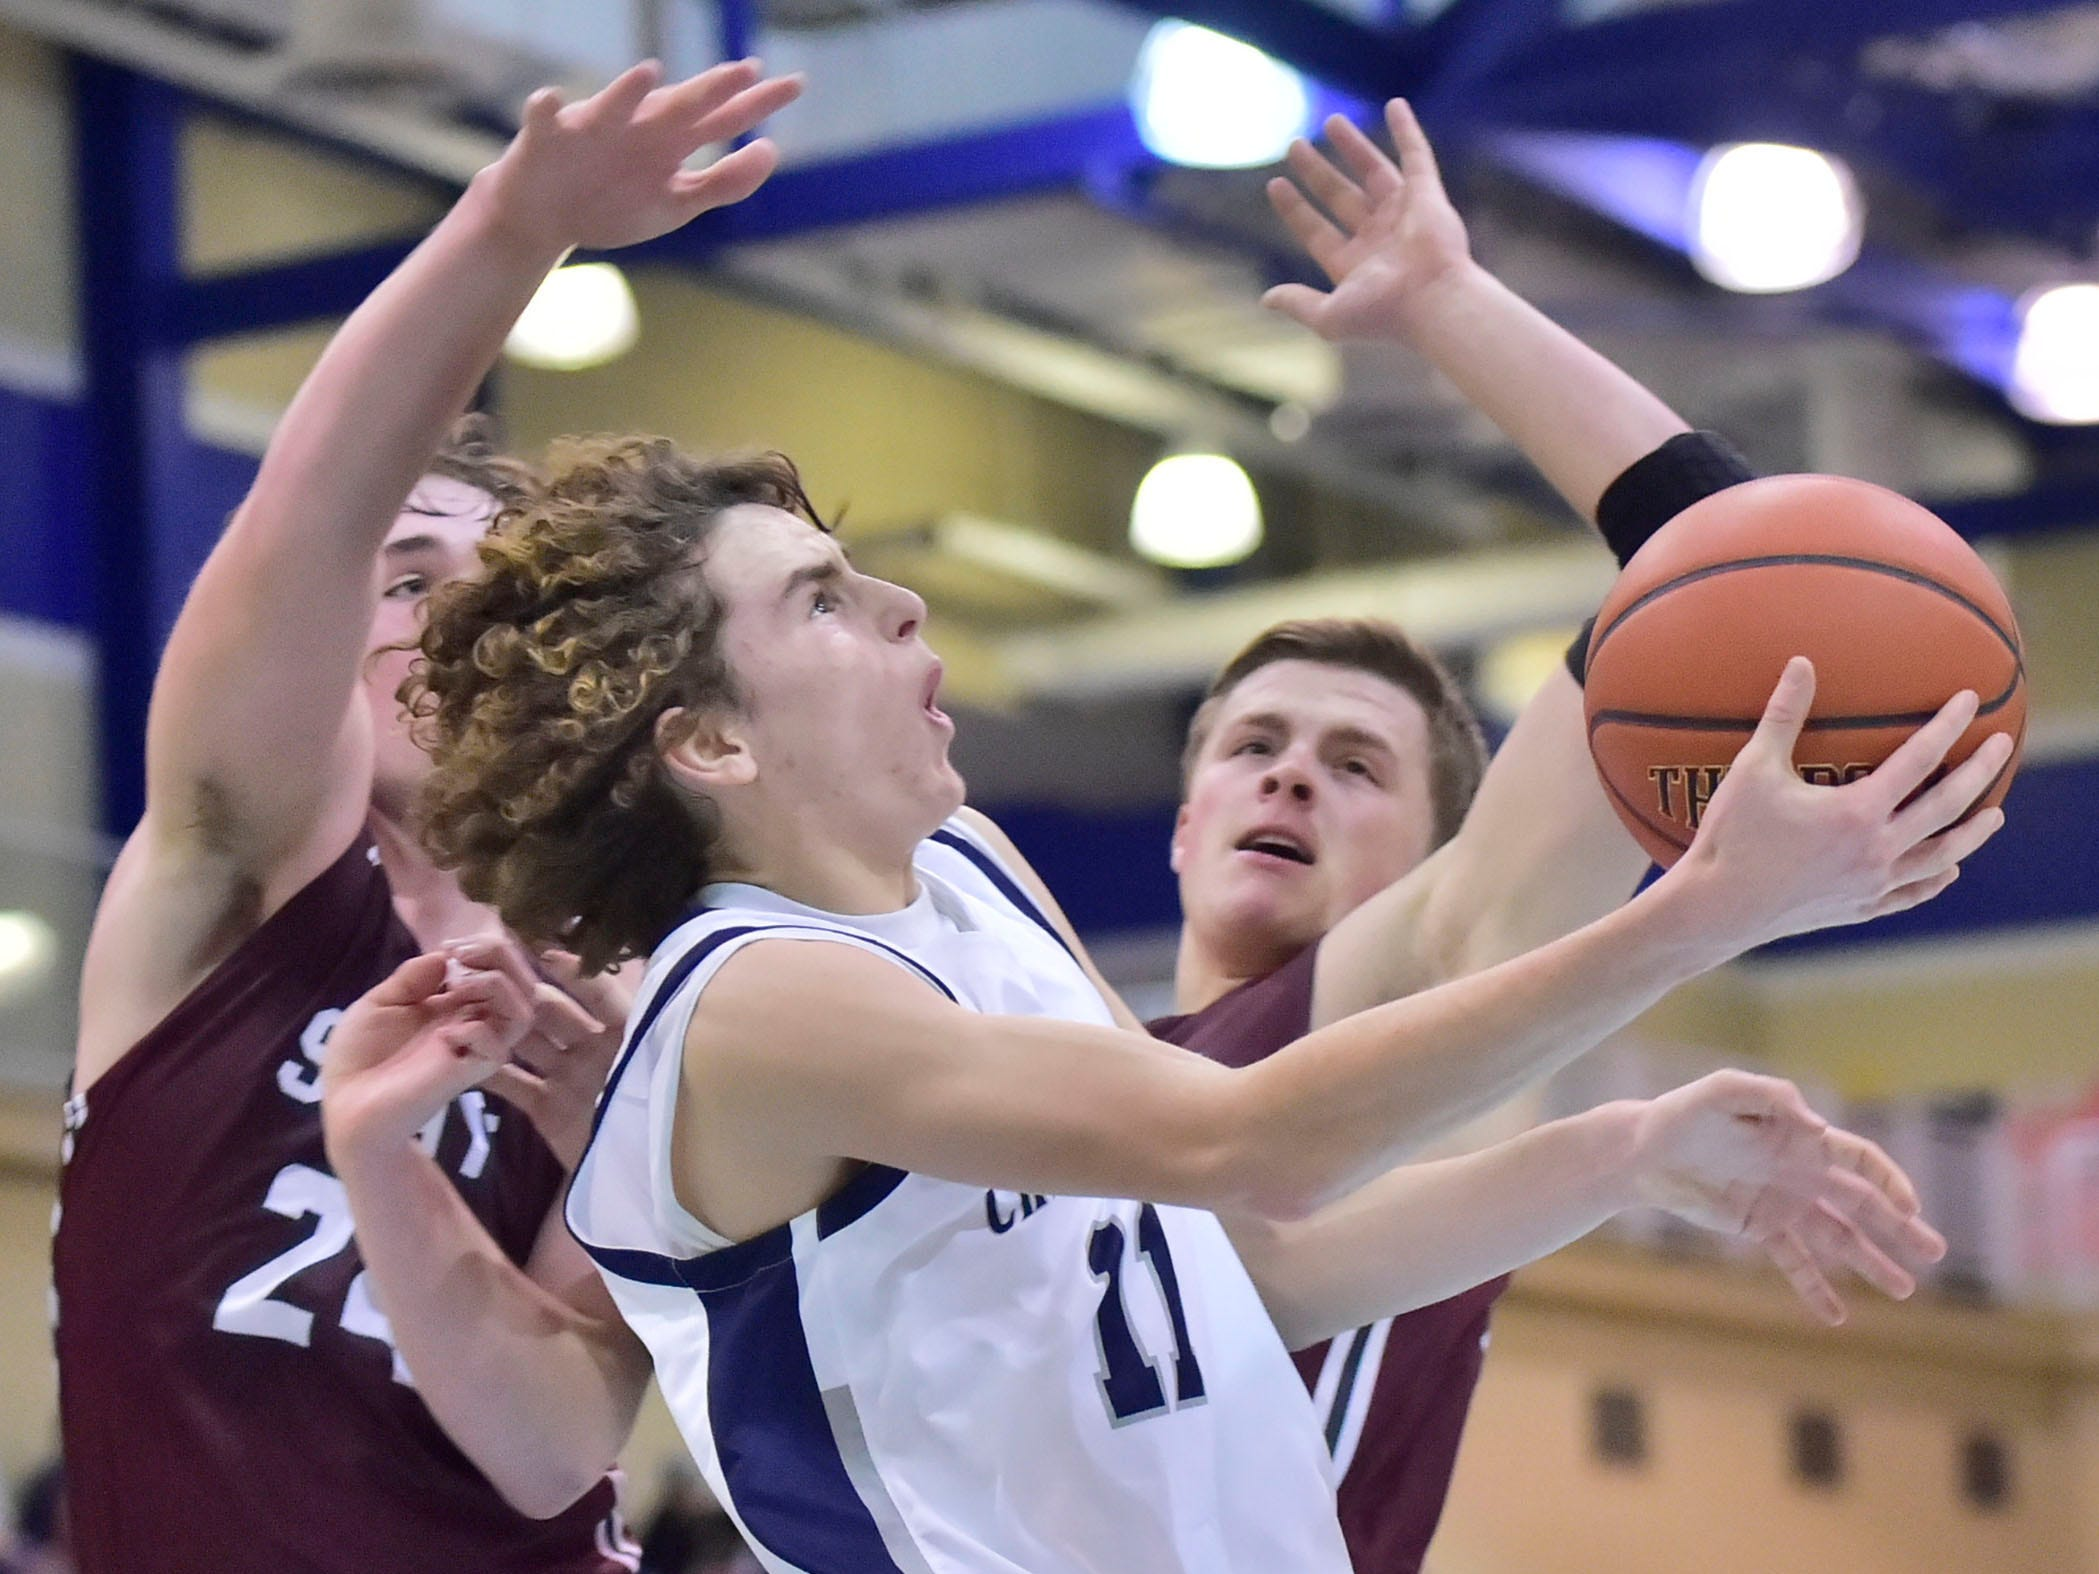 Chambersburg's Aaron Maynard (11) shoots against State College defenders. Chambersburg dropped a buzzer-beater 42-40 to State College during  D3 basketball, Friday, Dec. 14, 2018.